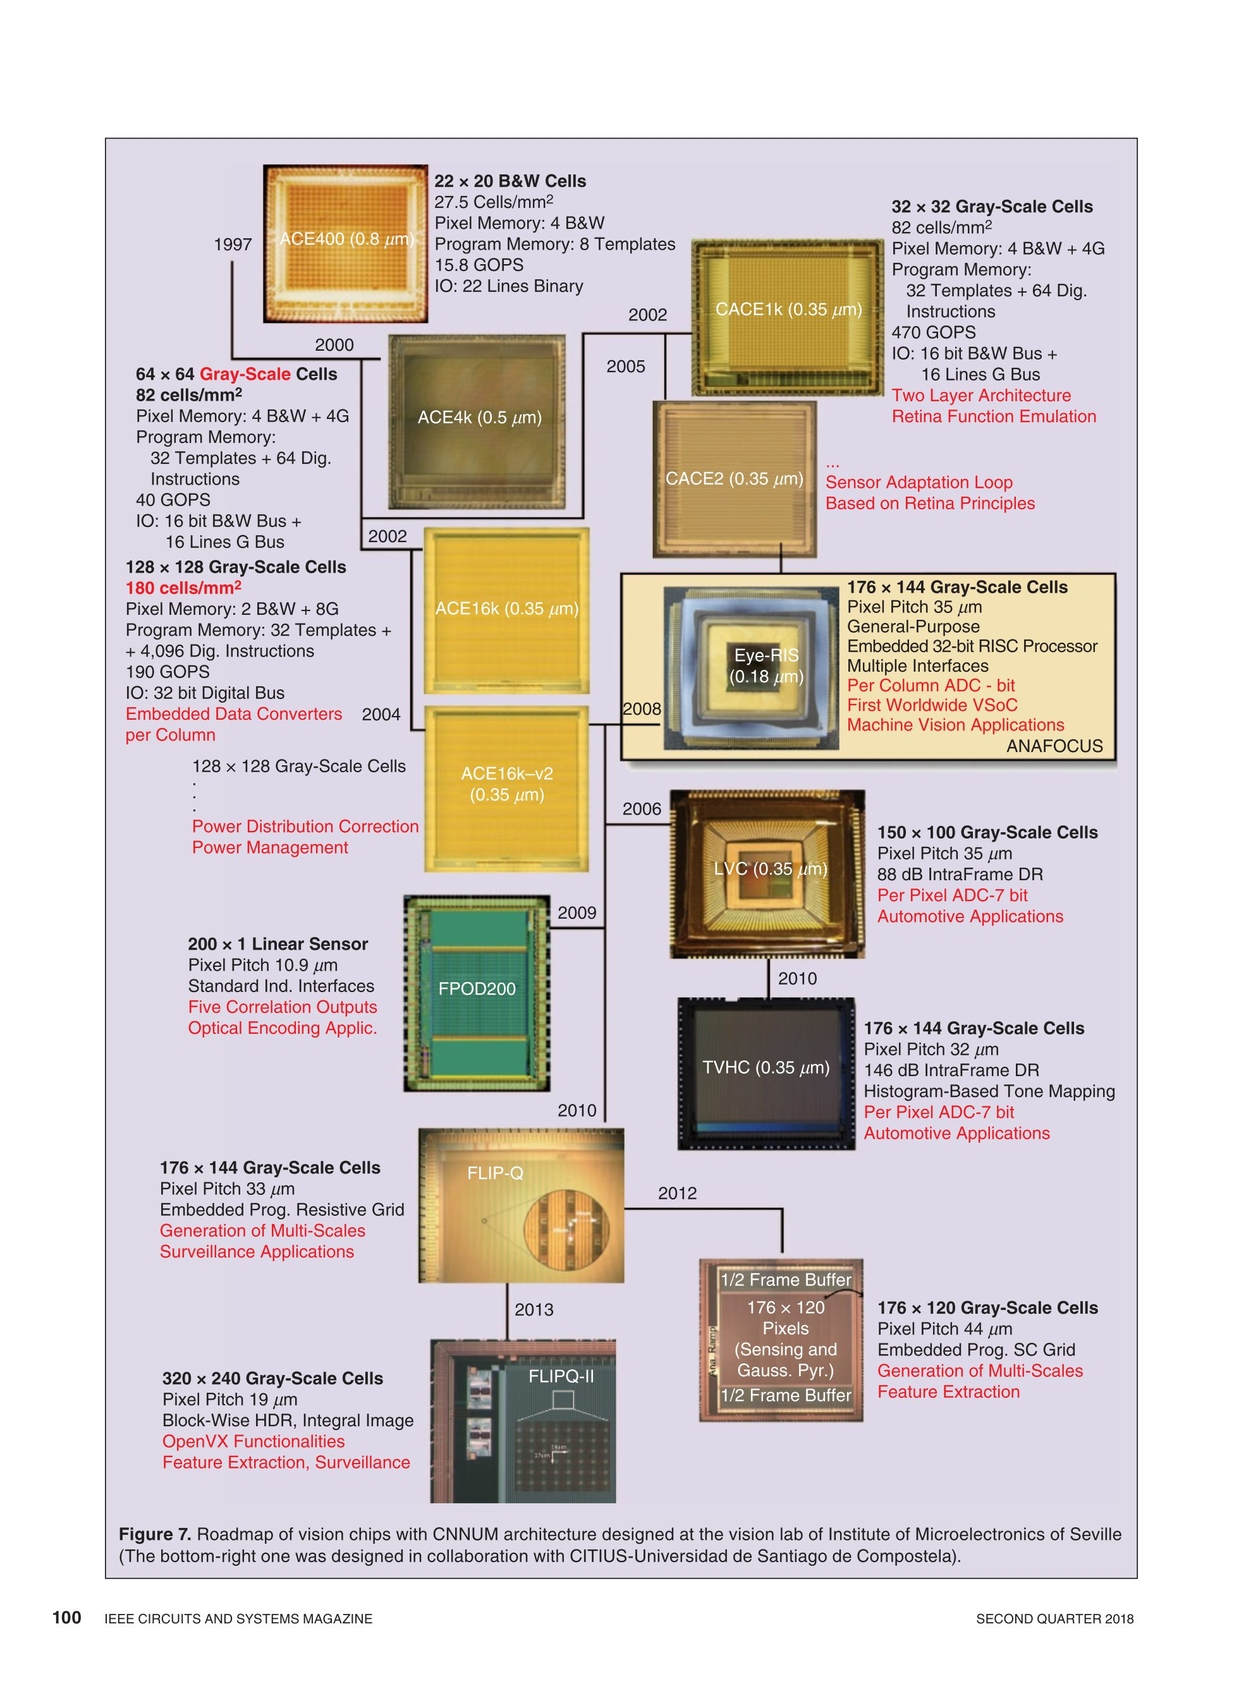 IEEE Circuits and Systems Magazine - Q2 2018